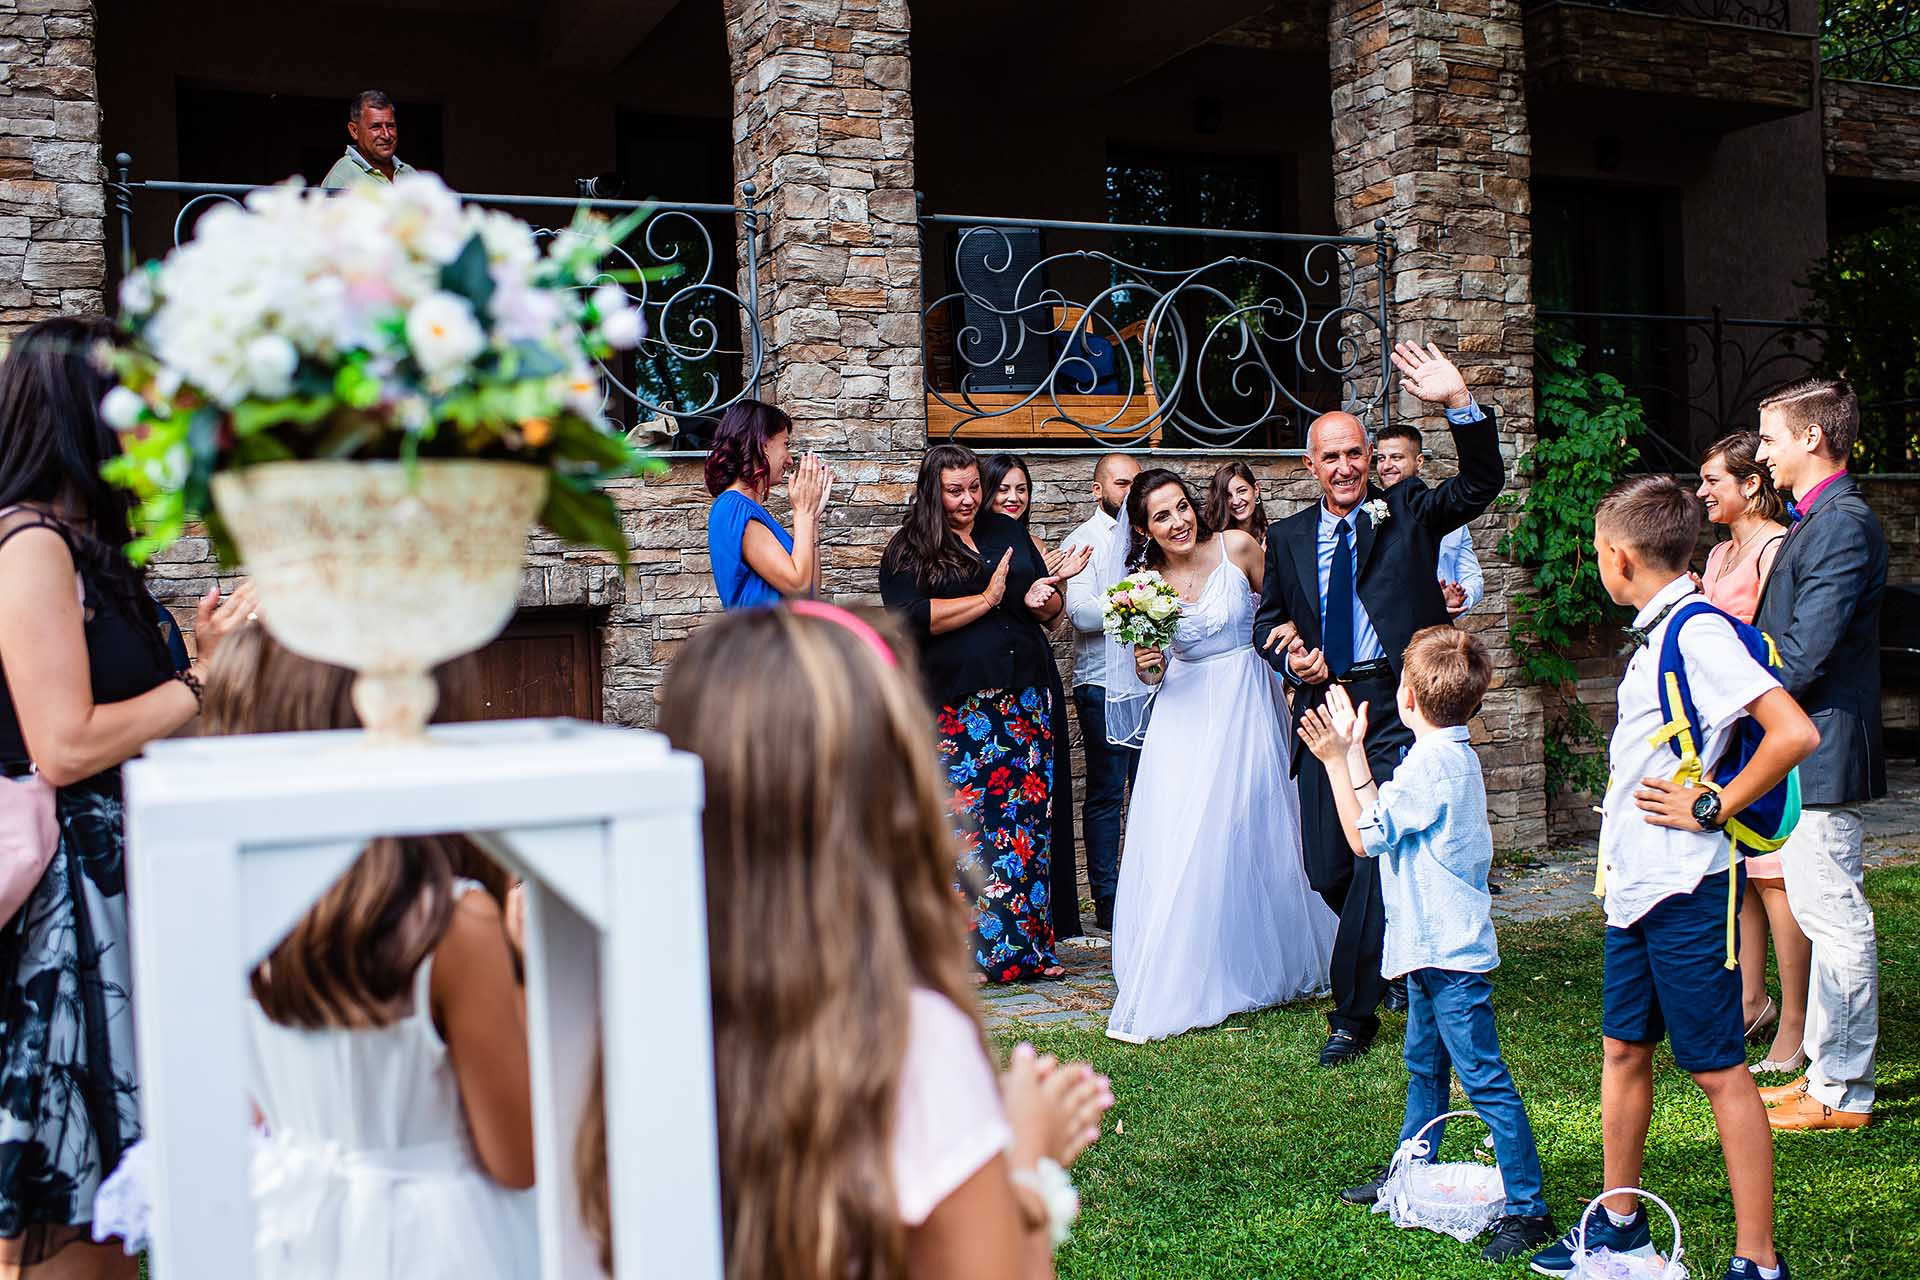 Bulgaria Outdoor Elopement Civil Ceremony Photographer | The second ceremony is held in the outdoors